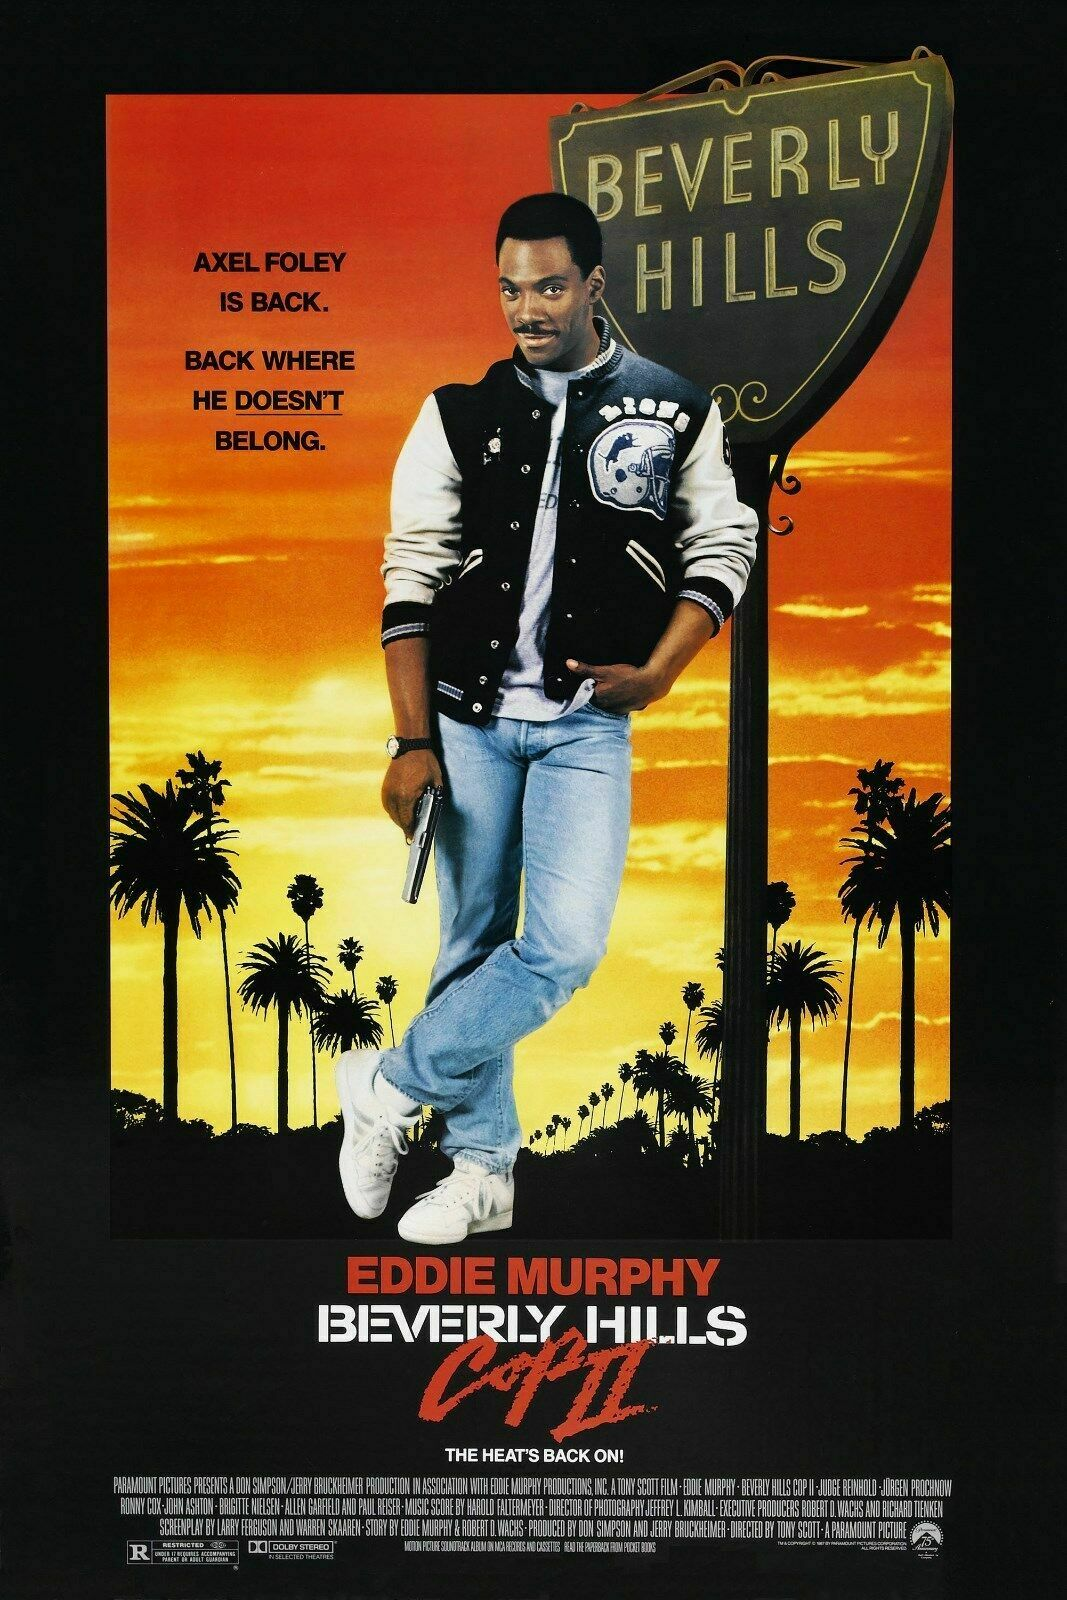 BEVERLY HILLS COP II Movie Art Film Print Silk Poster Home Wall Decor 24x36inch image